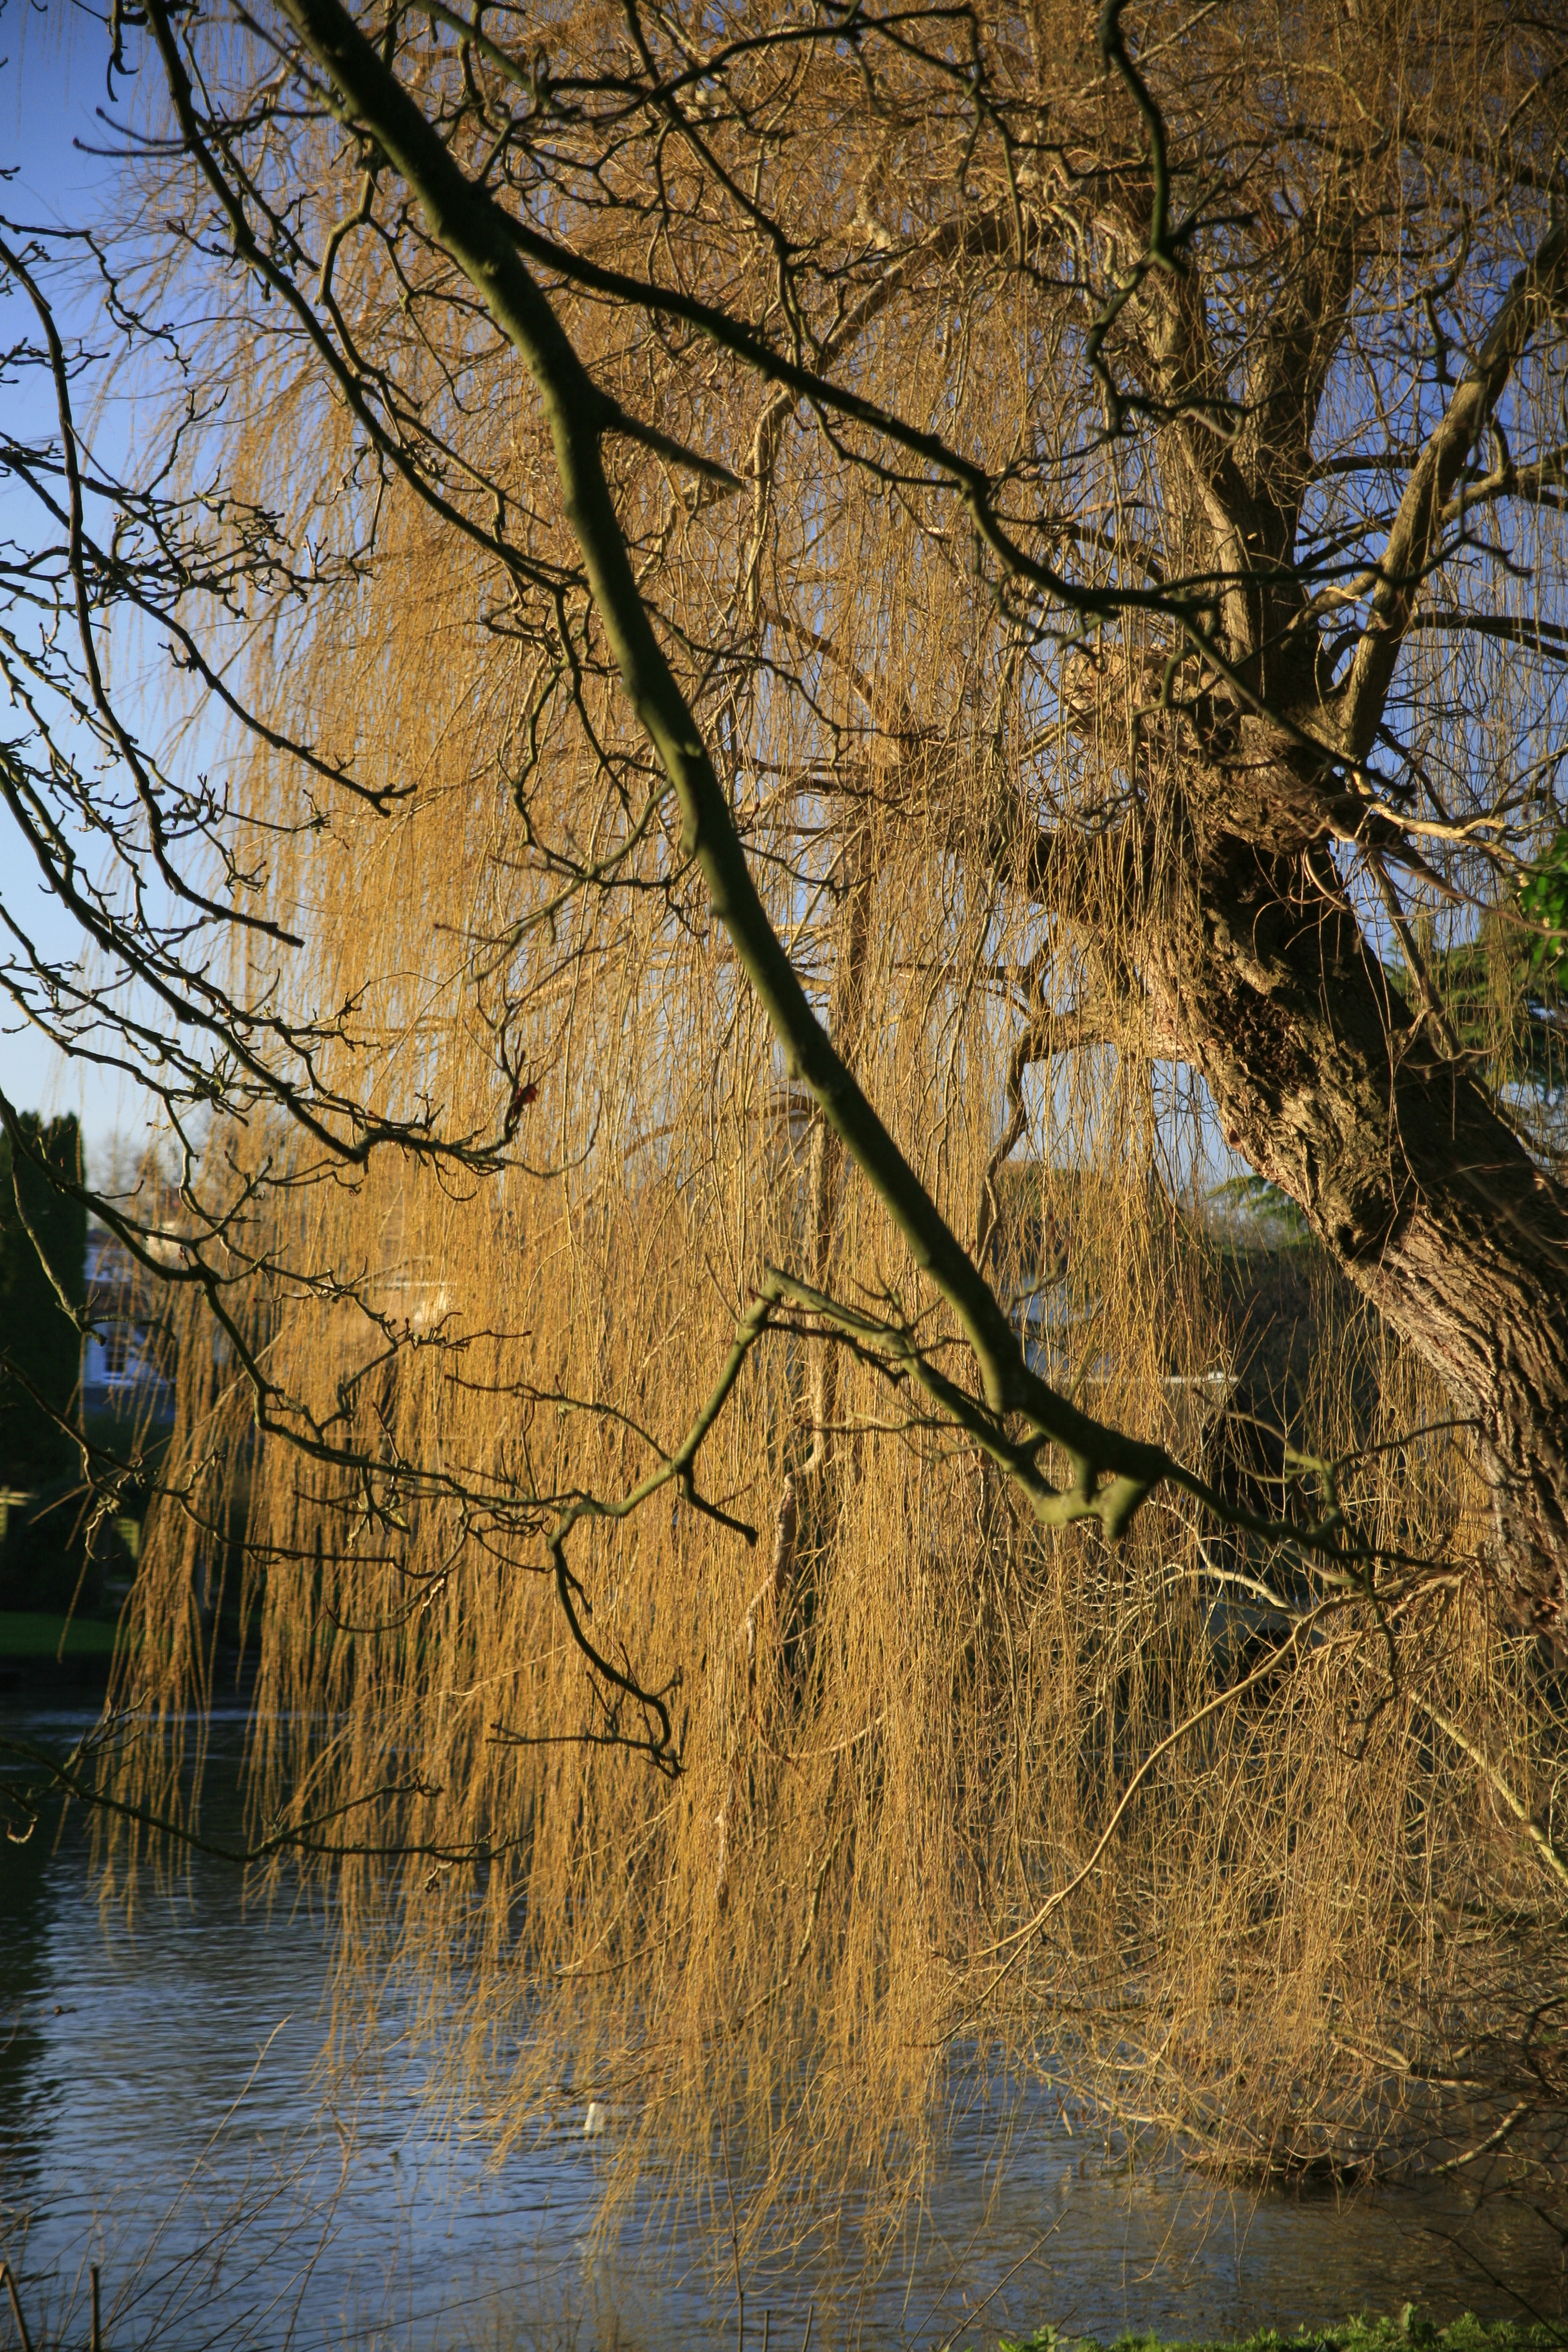 A photo of a weeping willow tree with golden leaves in bright afternoon sunlight